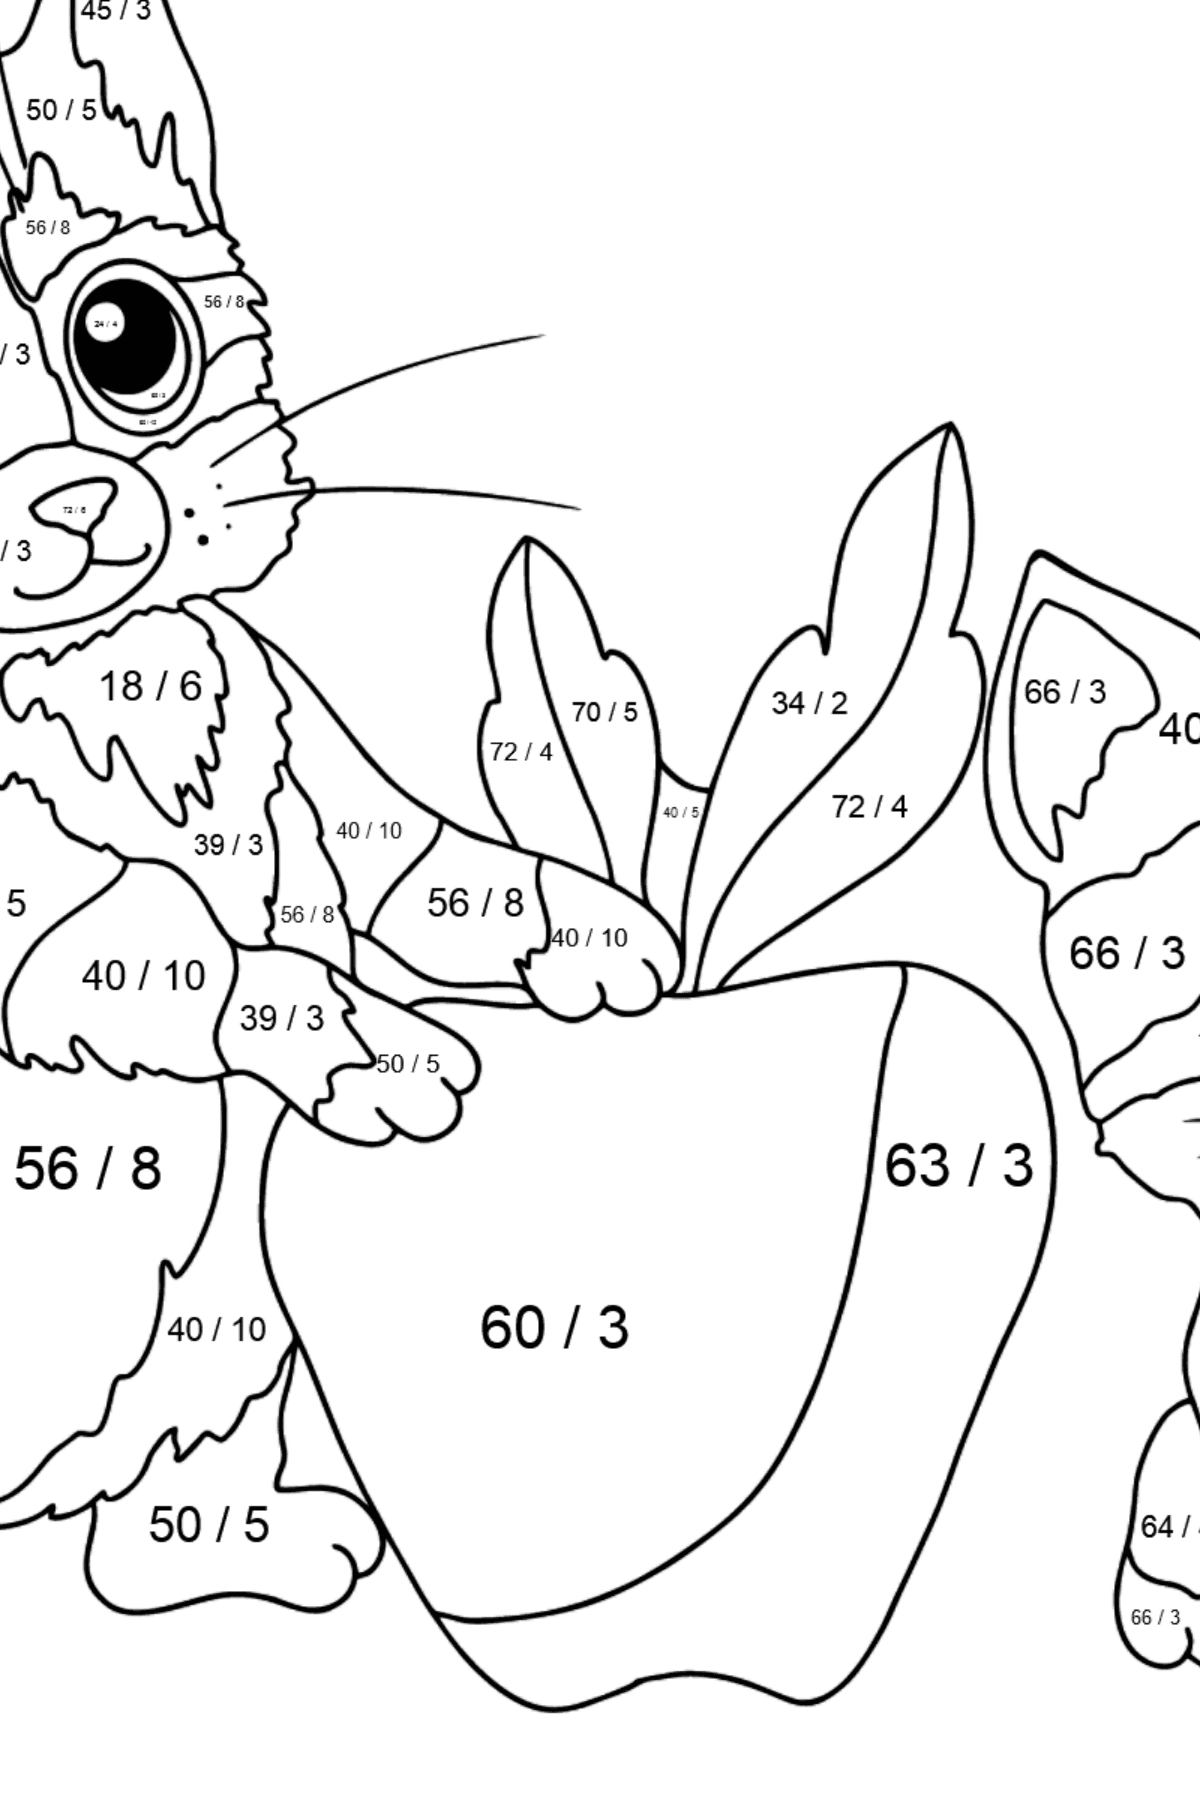 Coloring Page - Kittens are Having Fun with a Red Apple - Math Coloring - Division for Kids